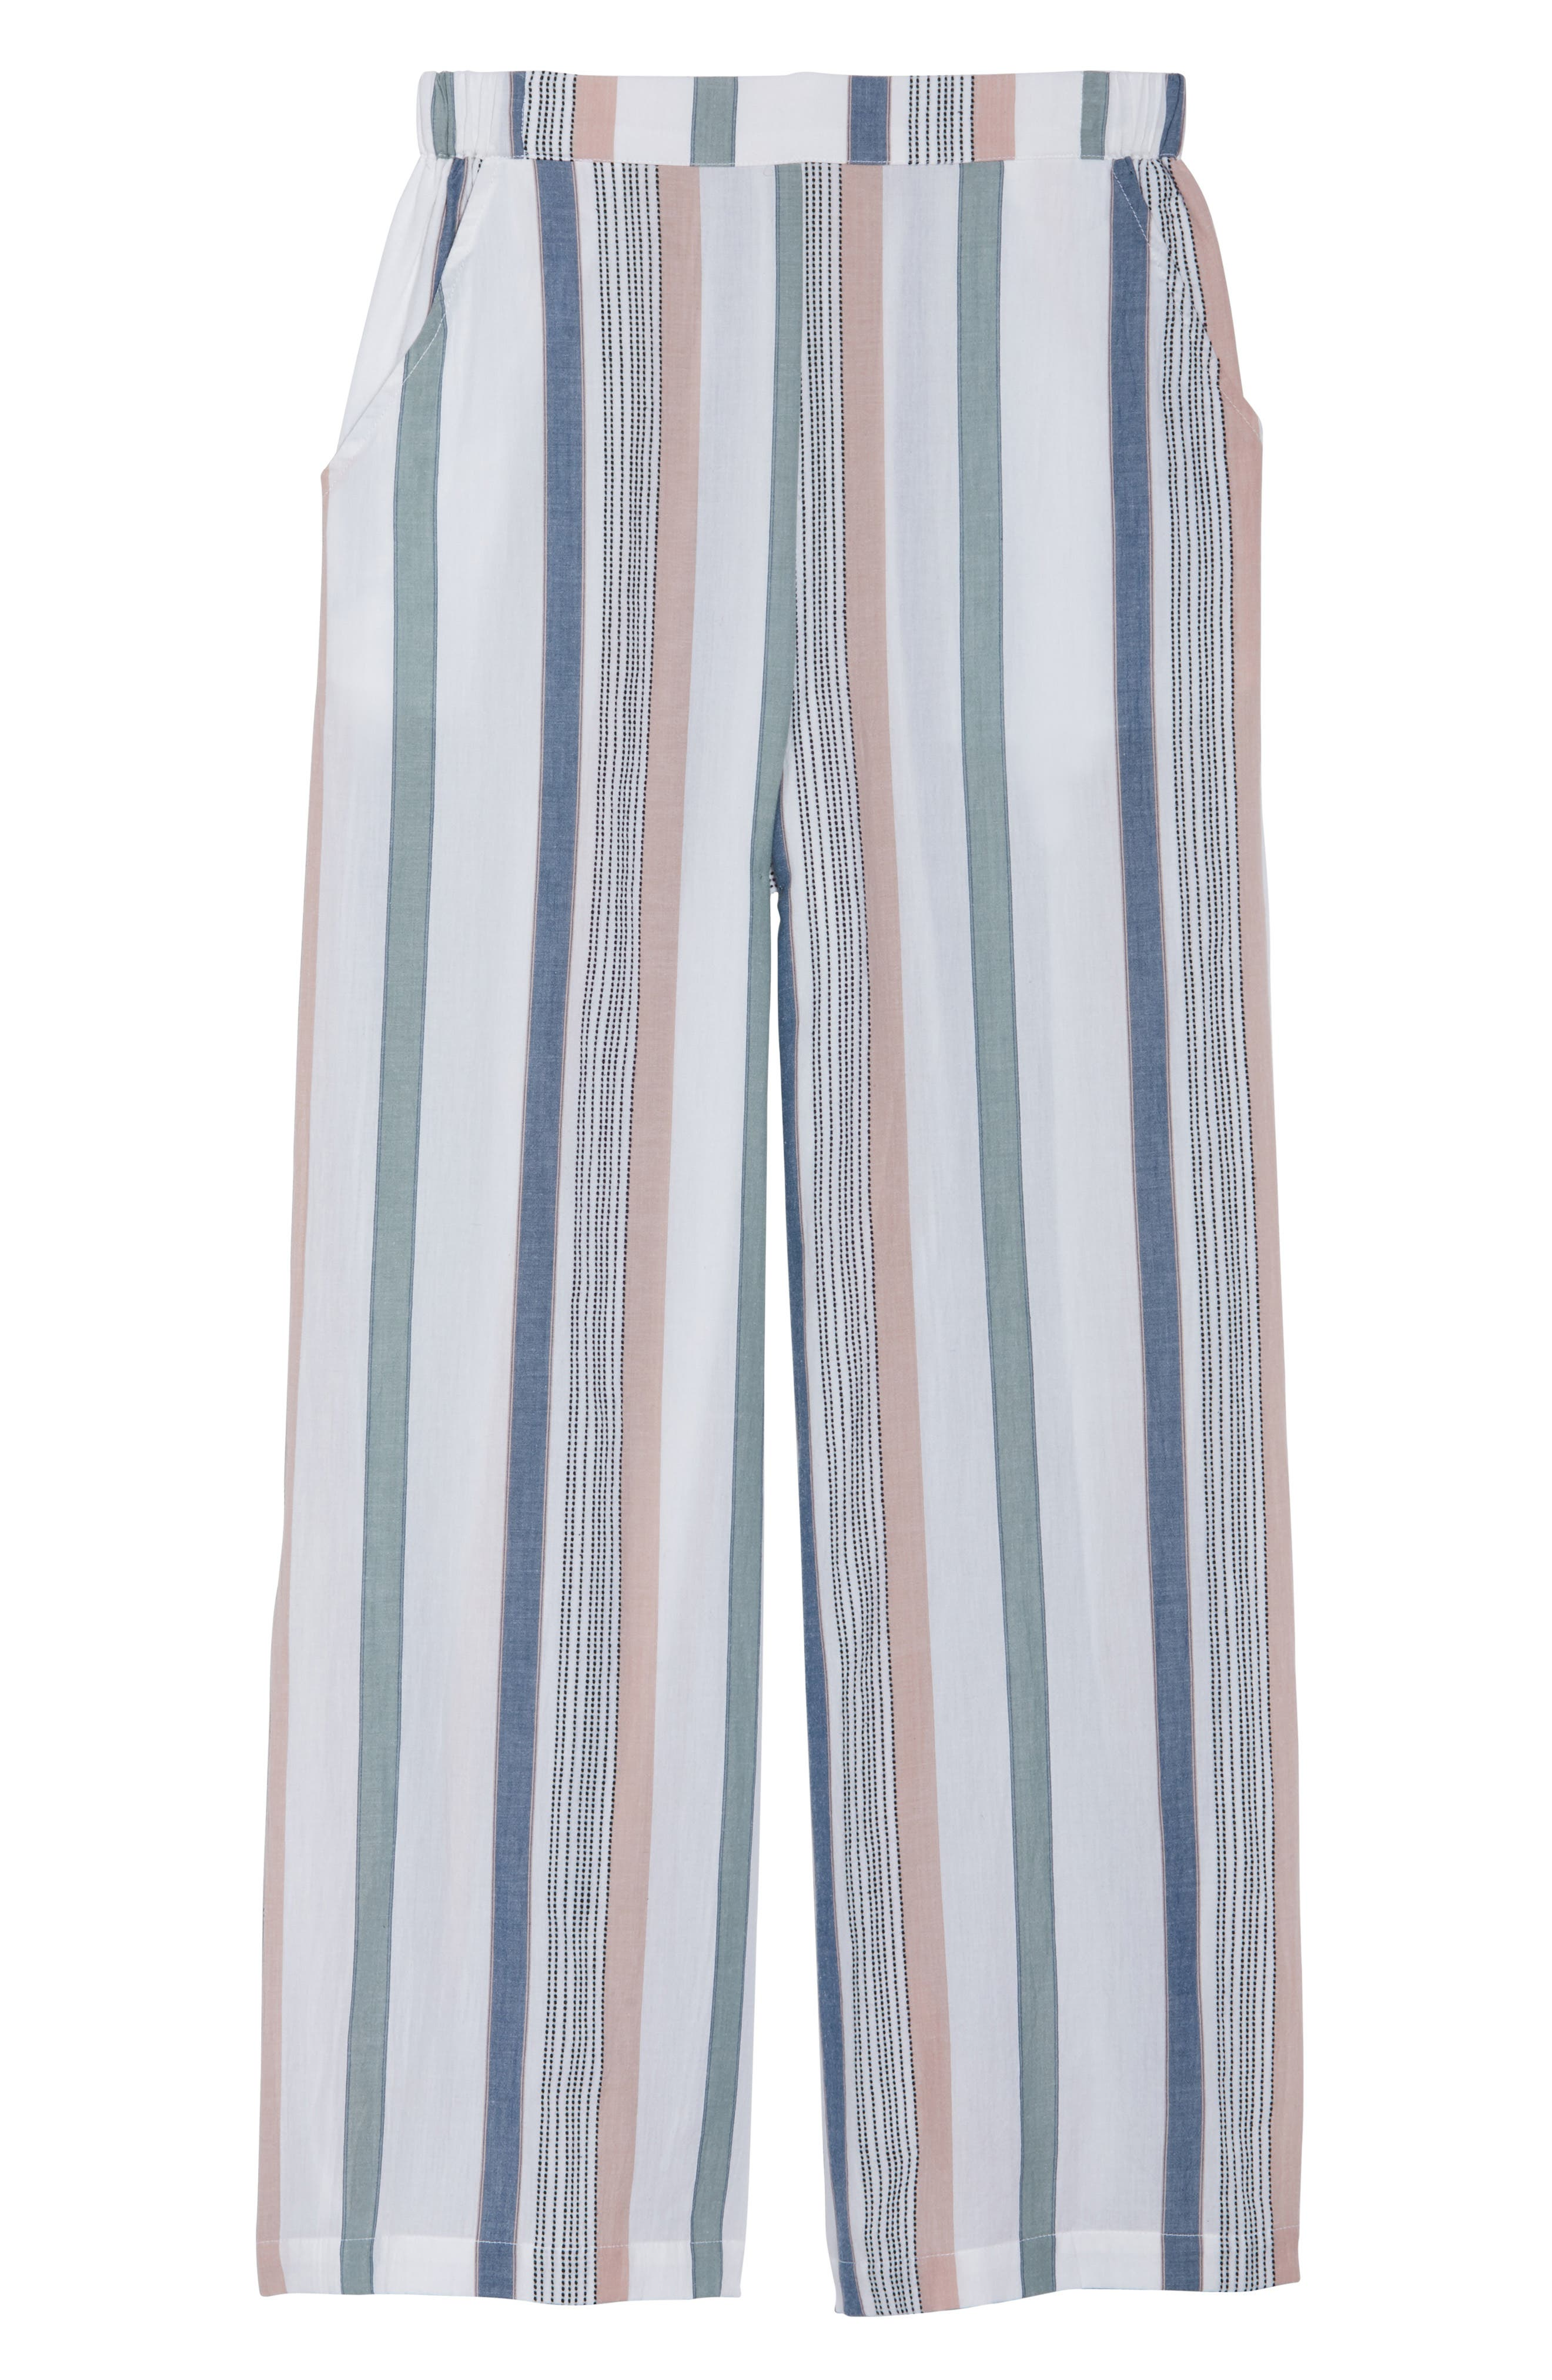 Hannah Cover-Up Pants,                             Alternate thumbnail 6, color,                             MEADOW GREEN STRIPE